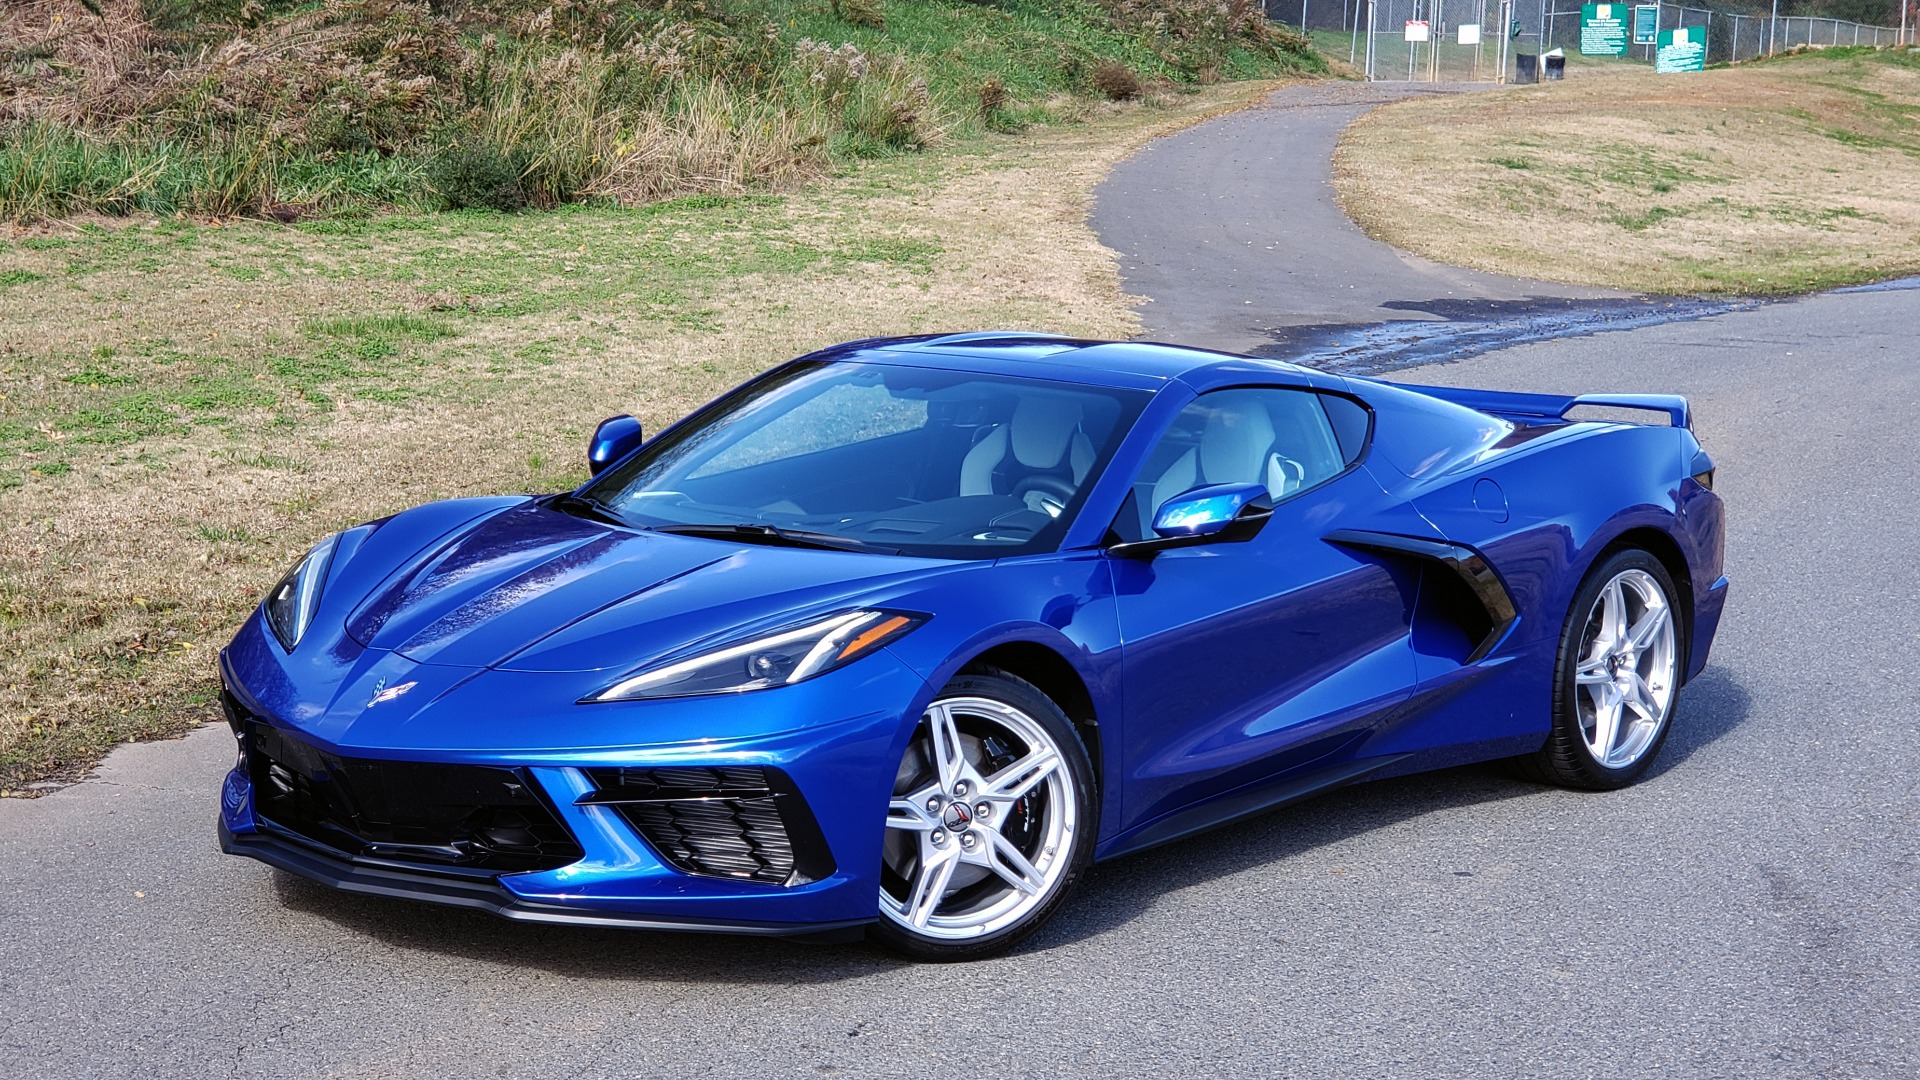 Used 2020 Chevrolet C8 CORVETTE STINGRAY 2LT COUPE / NAV / HUD / BOSE / GT2 SEATS / FRONT LIFT / REARVIEW for sale $98,999 at Formula Imports in Charlotte NC 28227 4